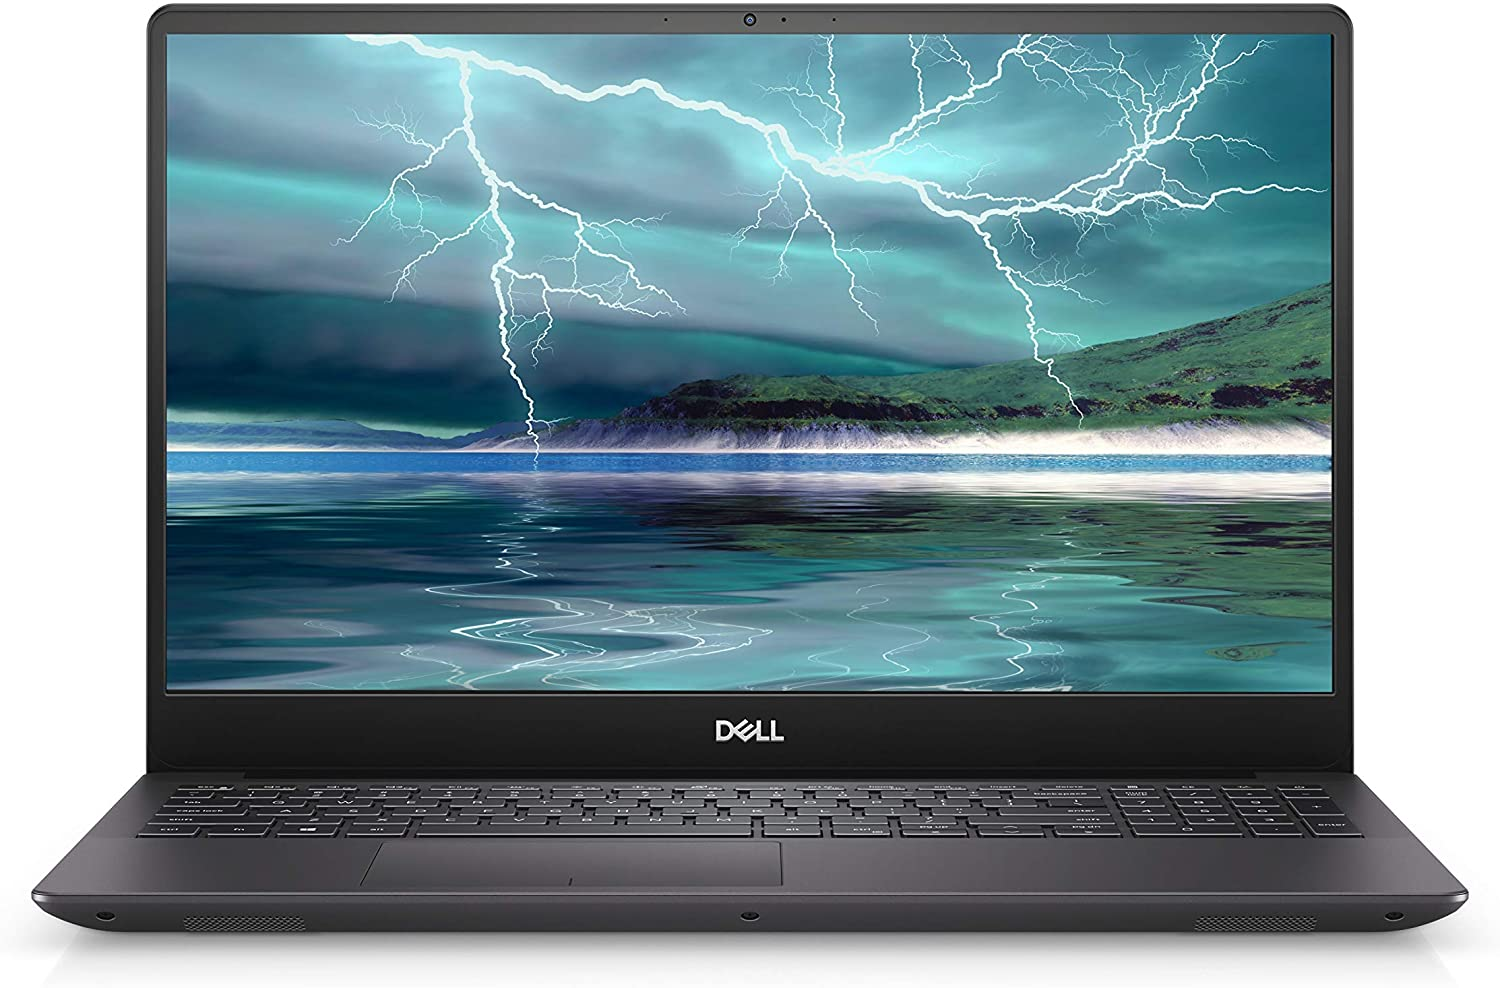 "Dell Inspiron 15 7000, 15.6"" FHD Display, 9th Gen Intel Core i7-9750H, NVIDIA GeForce GTX 1050, 256 SSD HD, 8GB RAM (i7590-7865BLK-PUS)"